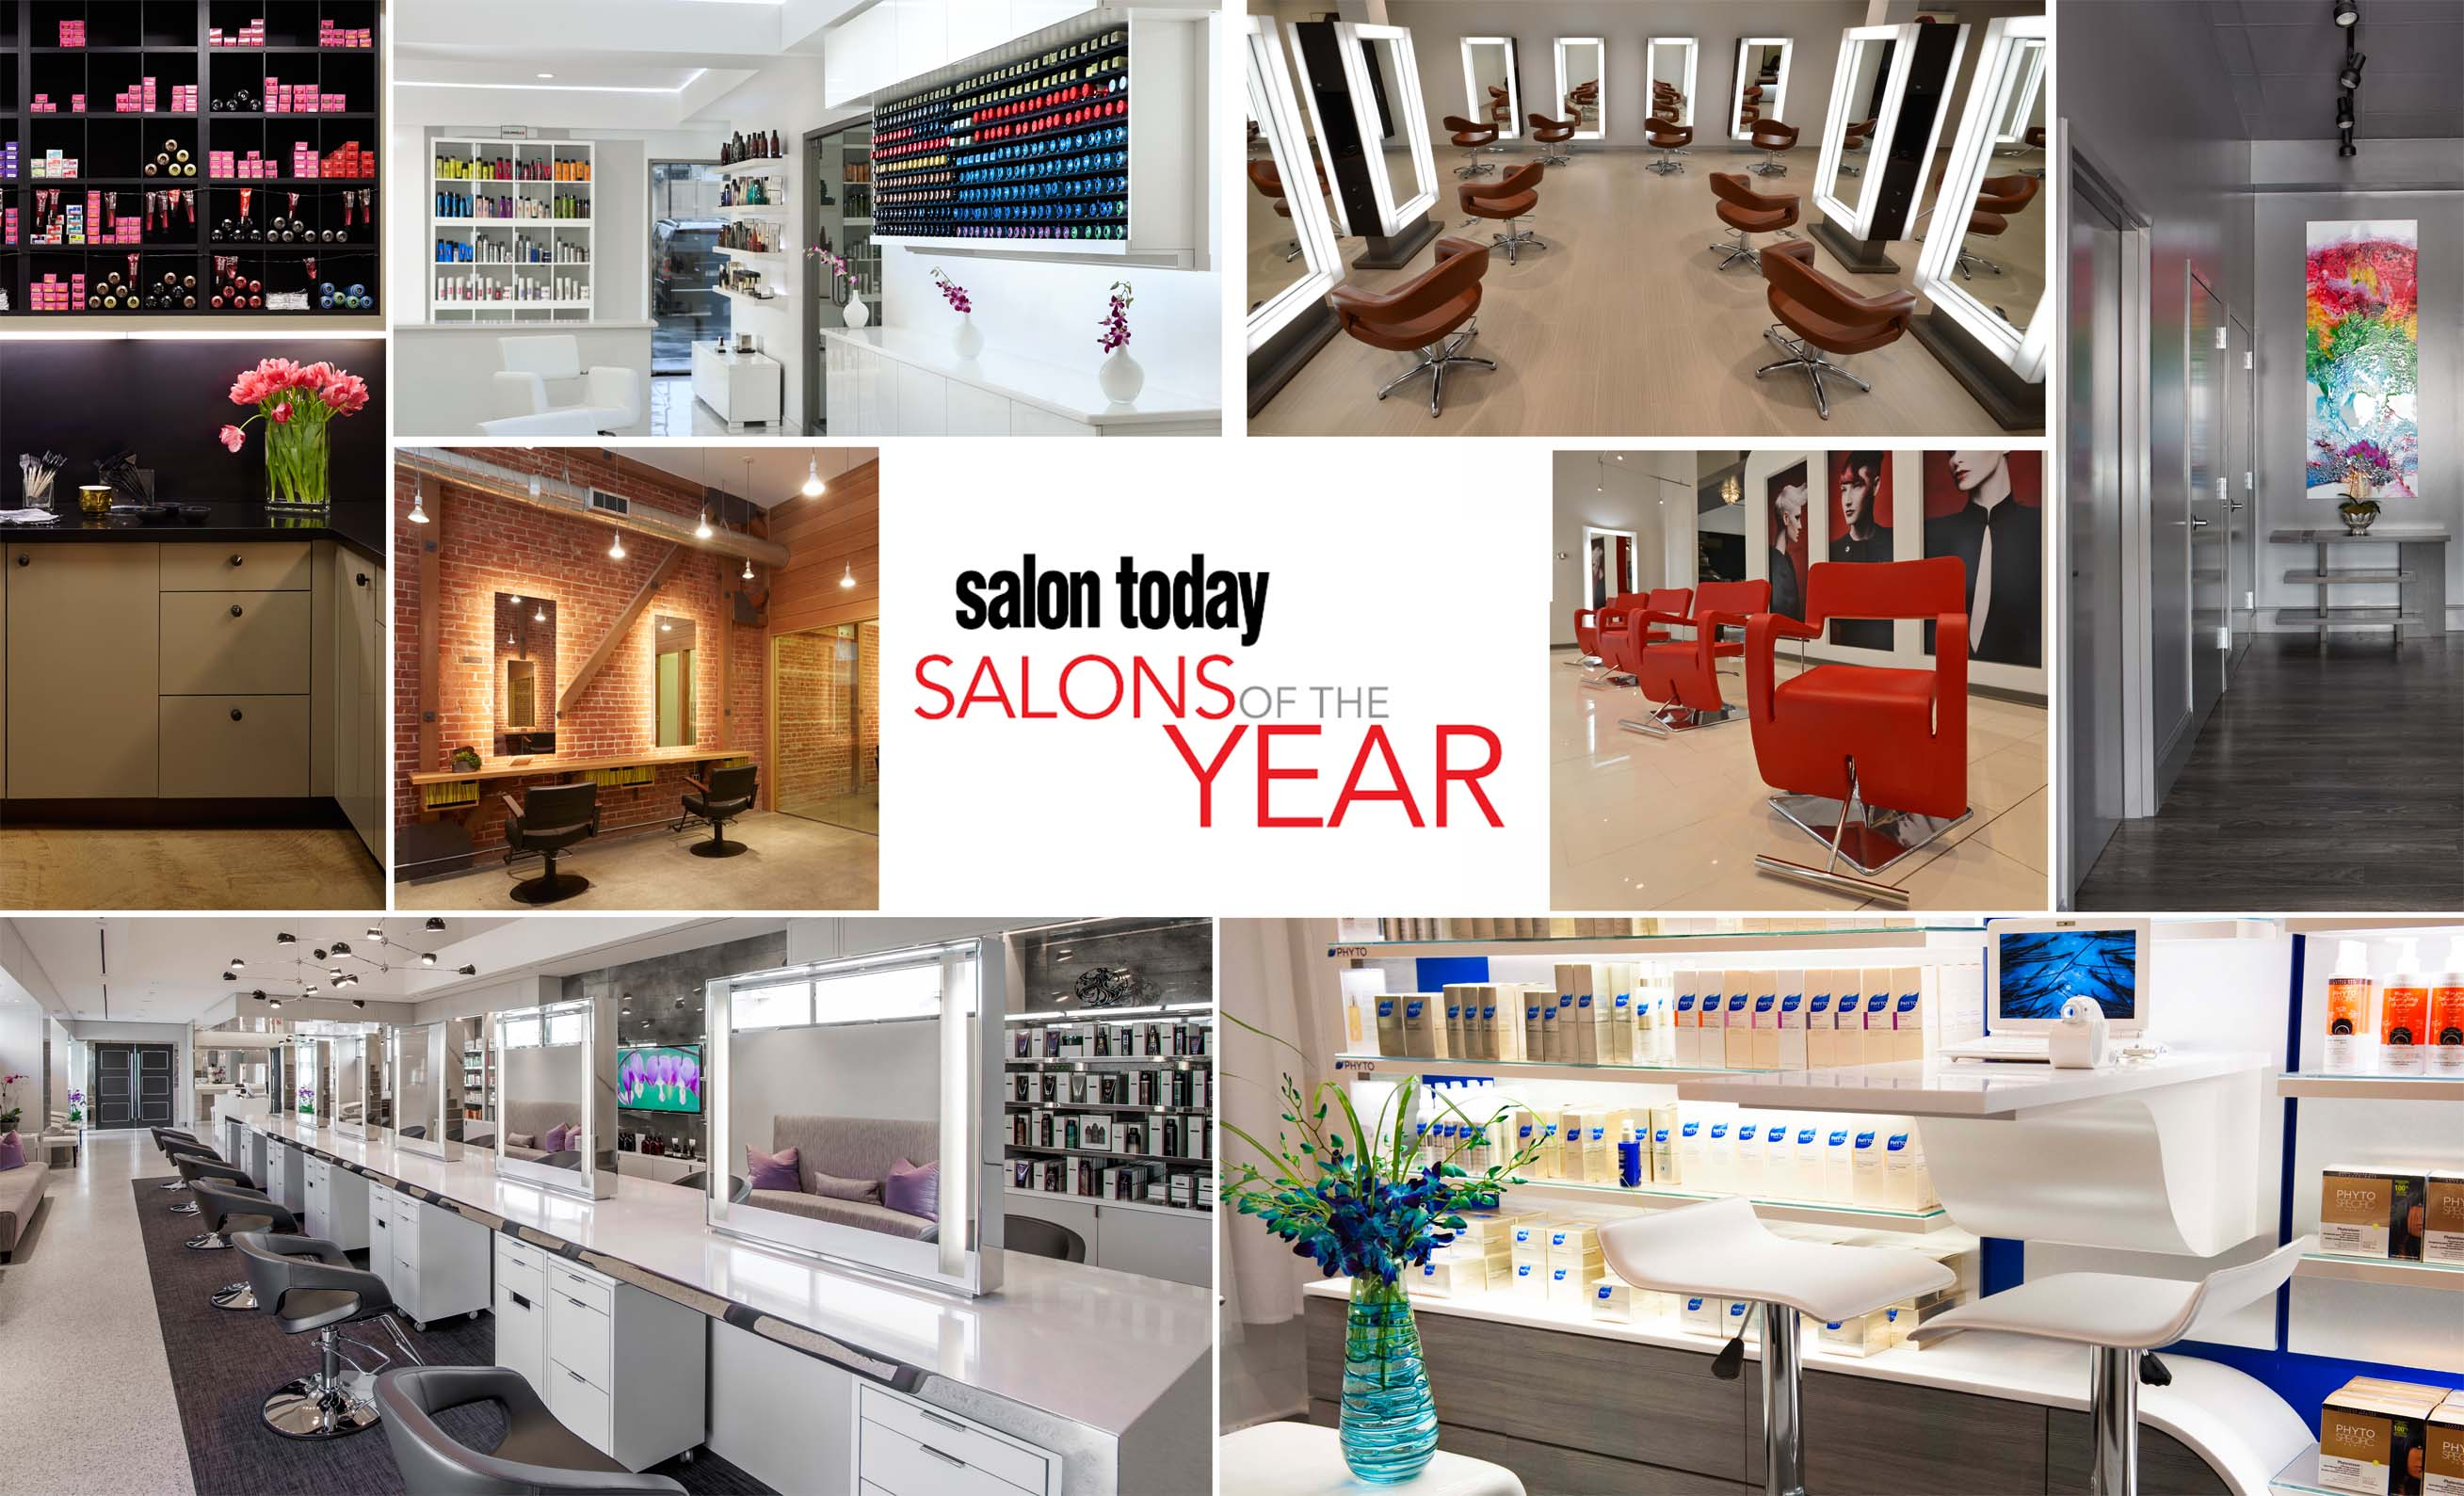 Announcing the 2015 Salons of the Year